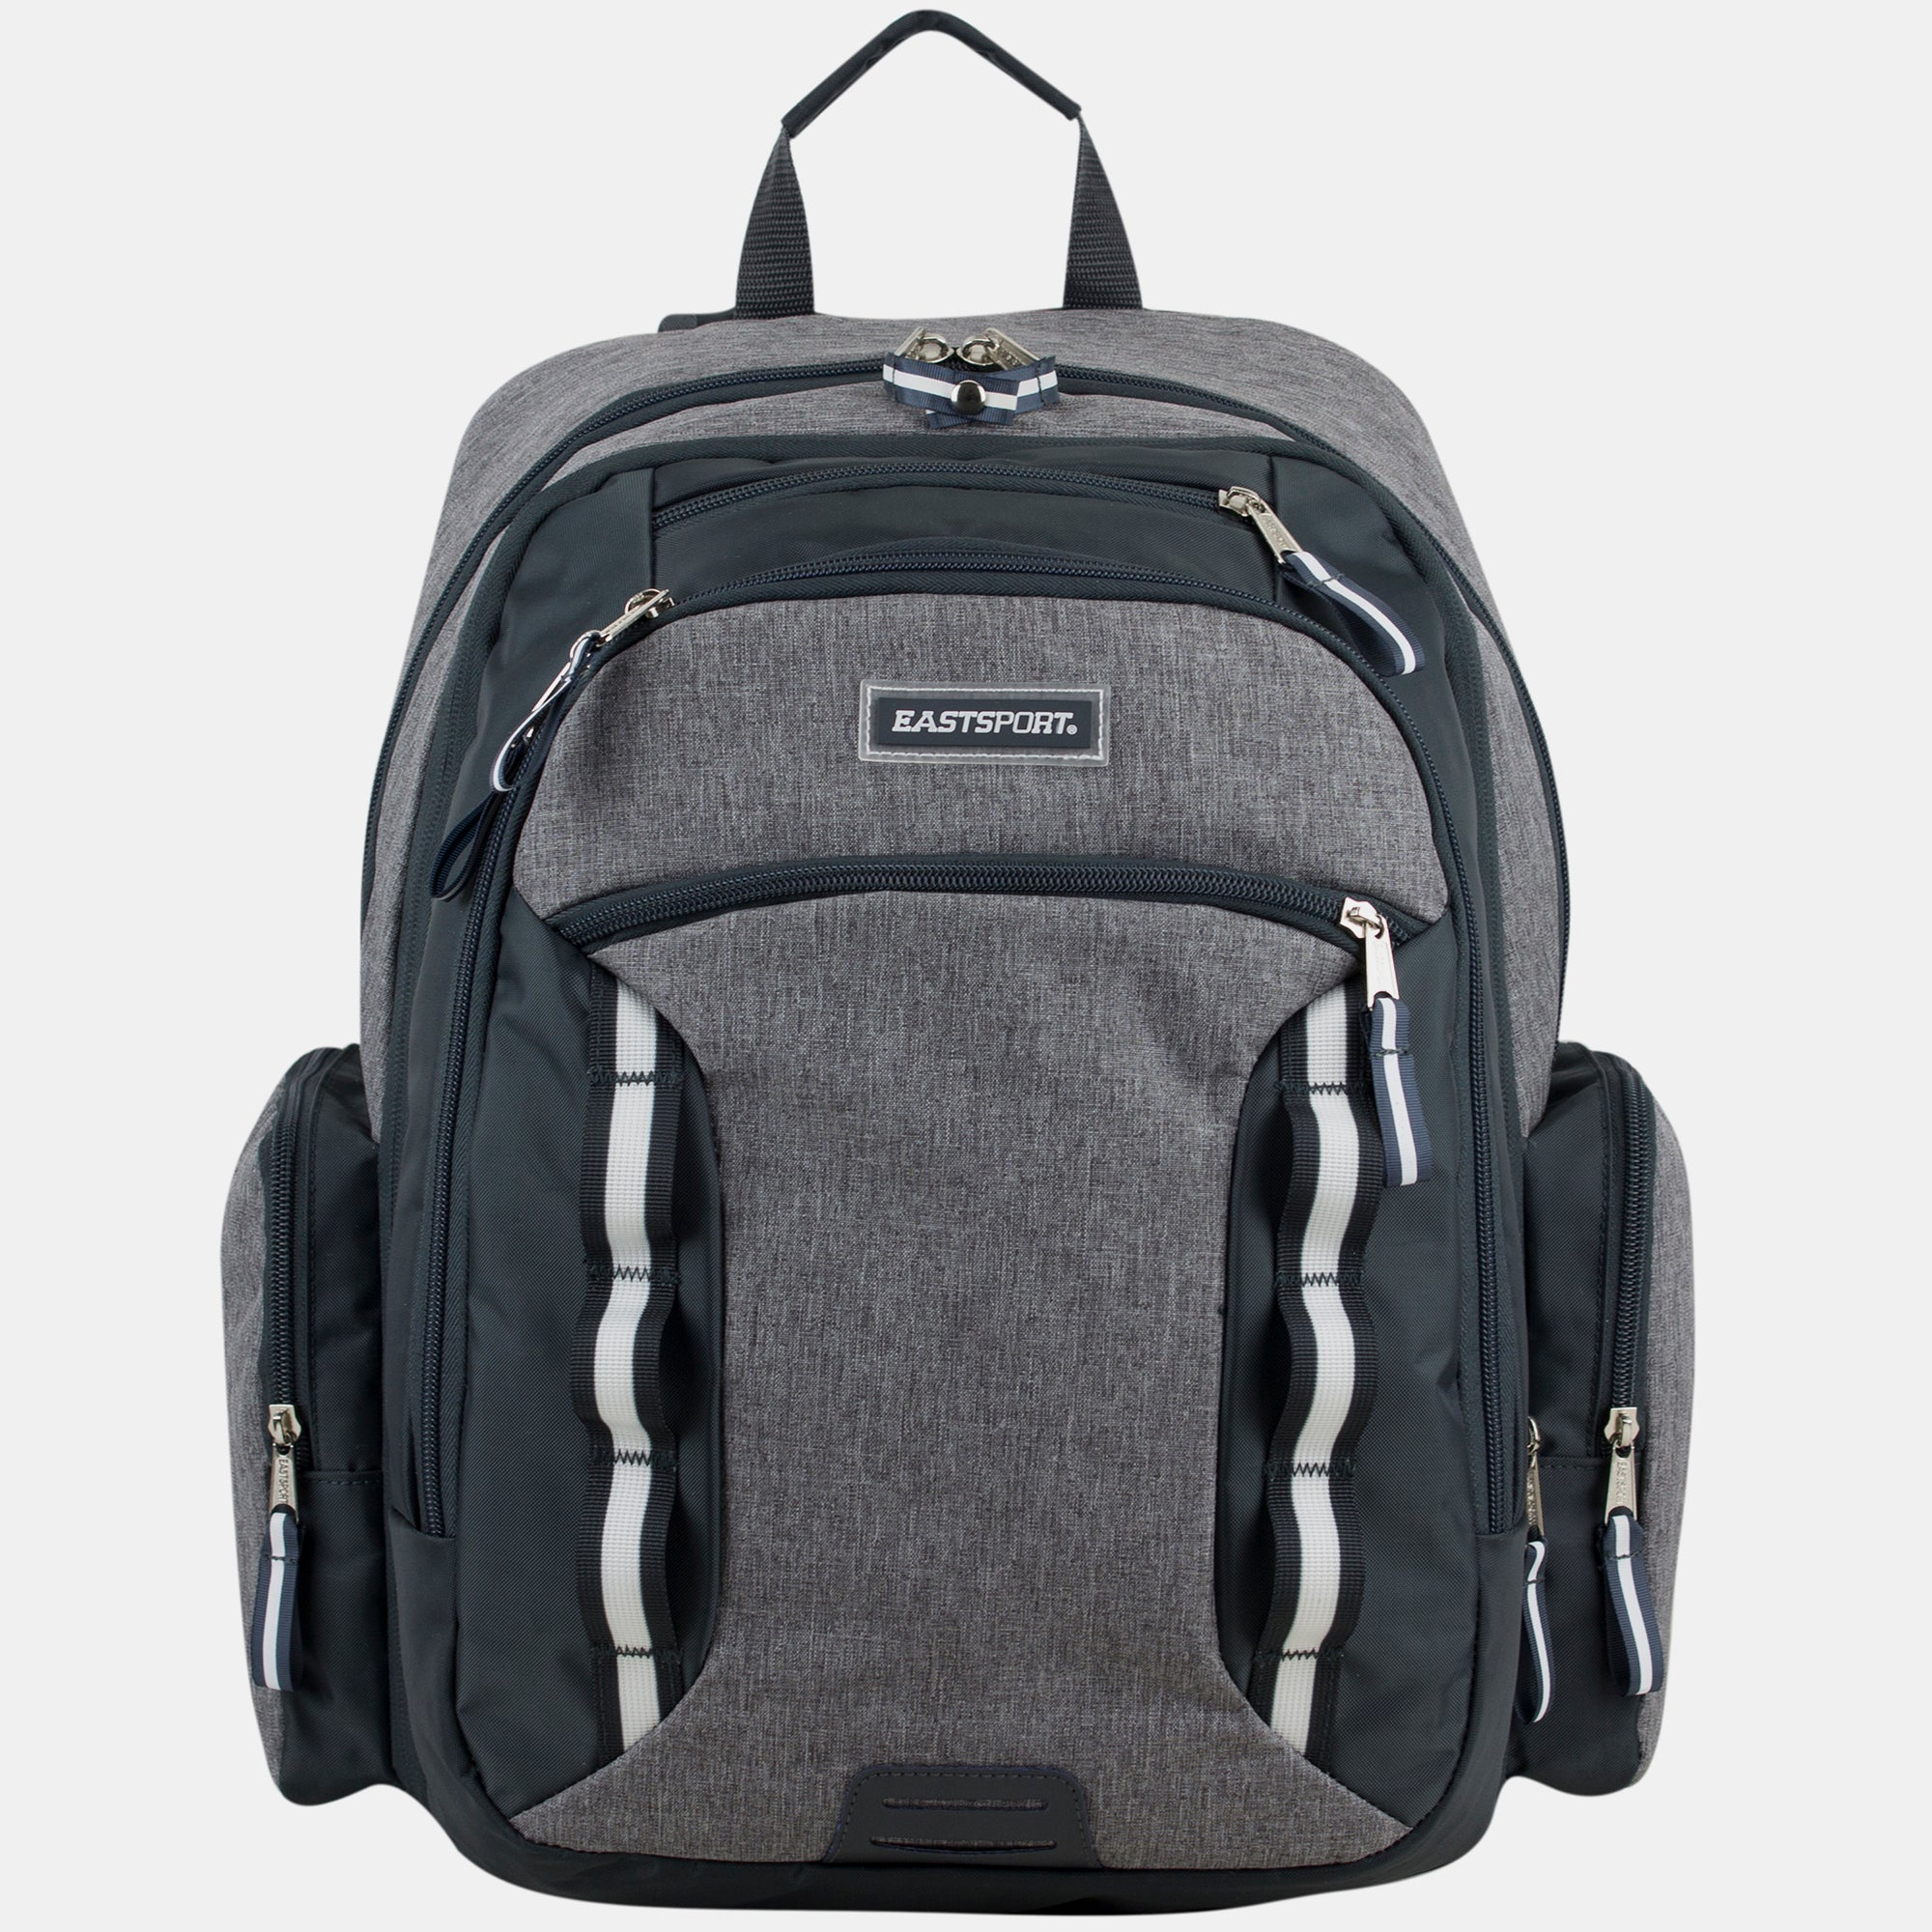 Eastsport Odyssey Backpack